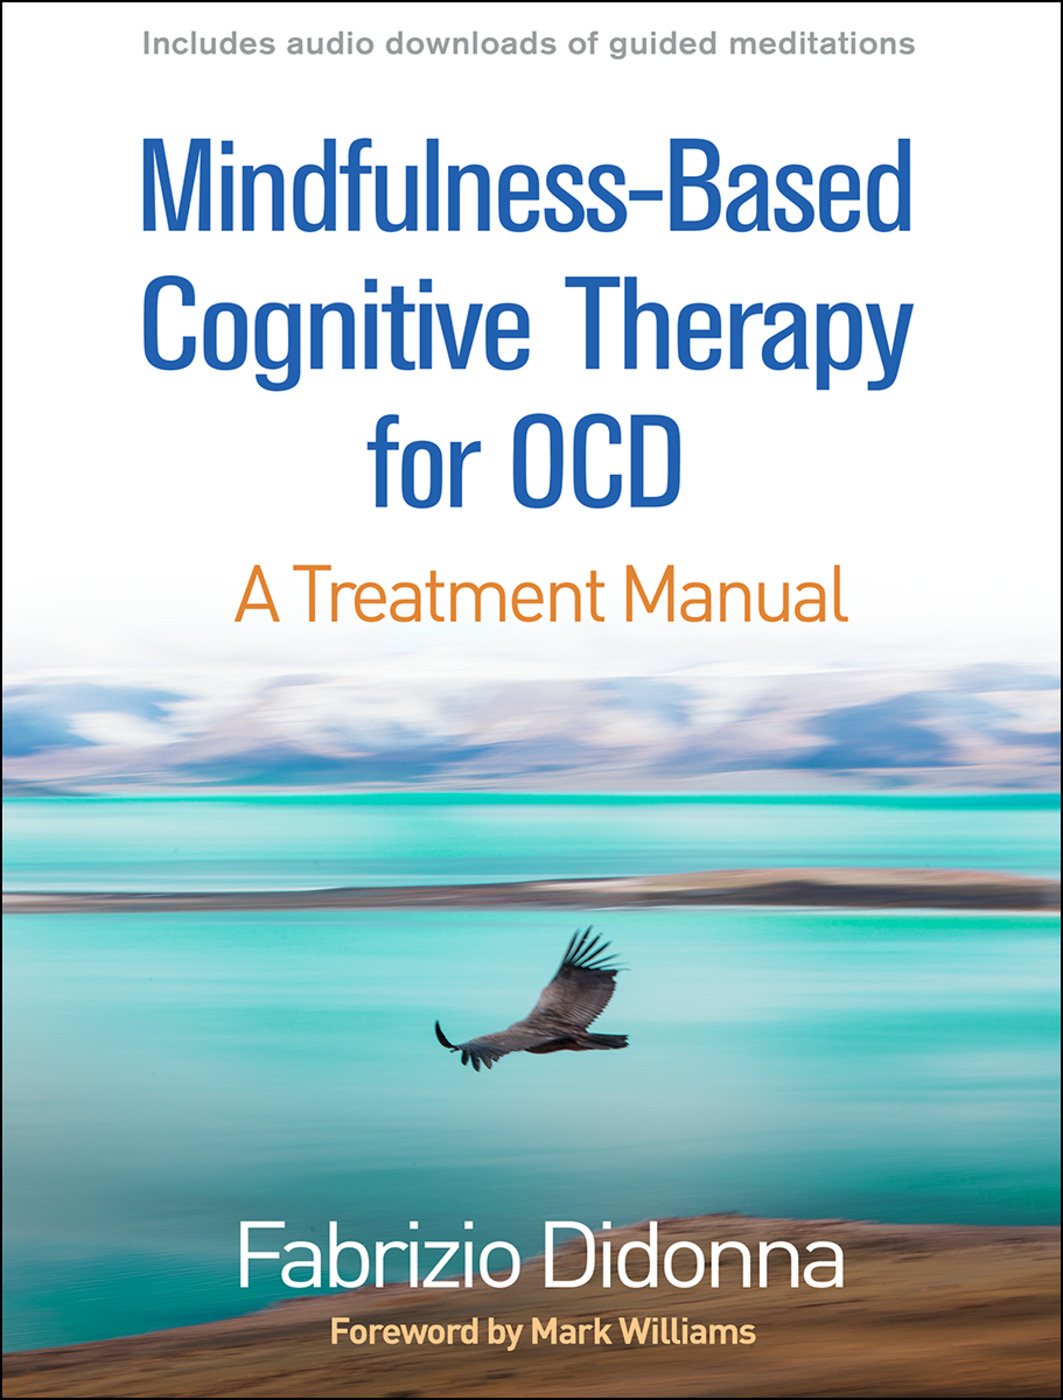 Mindfulness-Based Cognitive Therapy for OCD: A Treatment Manual book cover